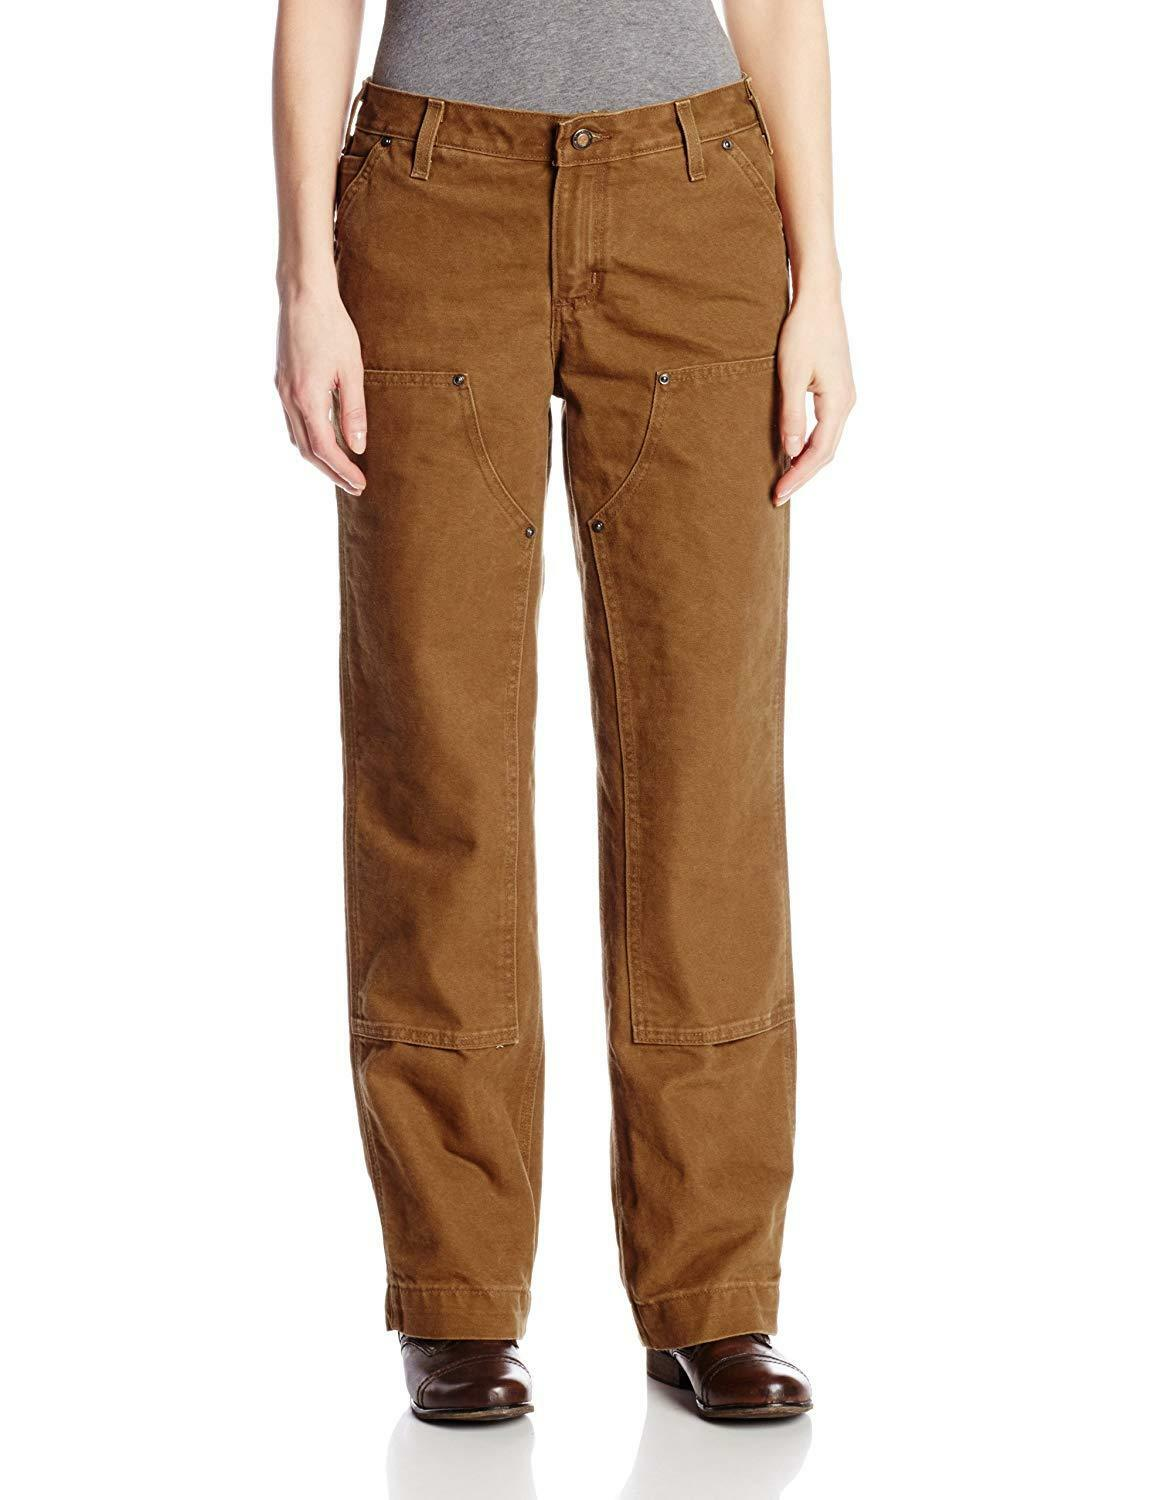 NWT CARHARTT Women's Brown Relaxed Fit Sandstone Kane Dungaree Pants  18